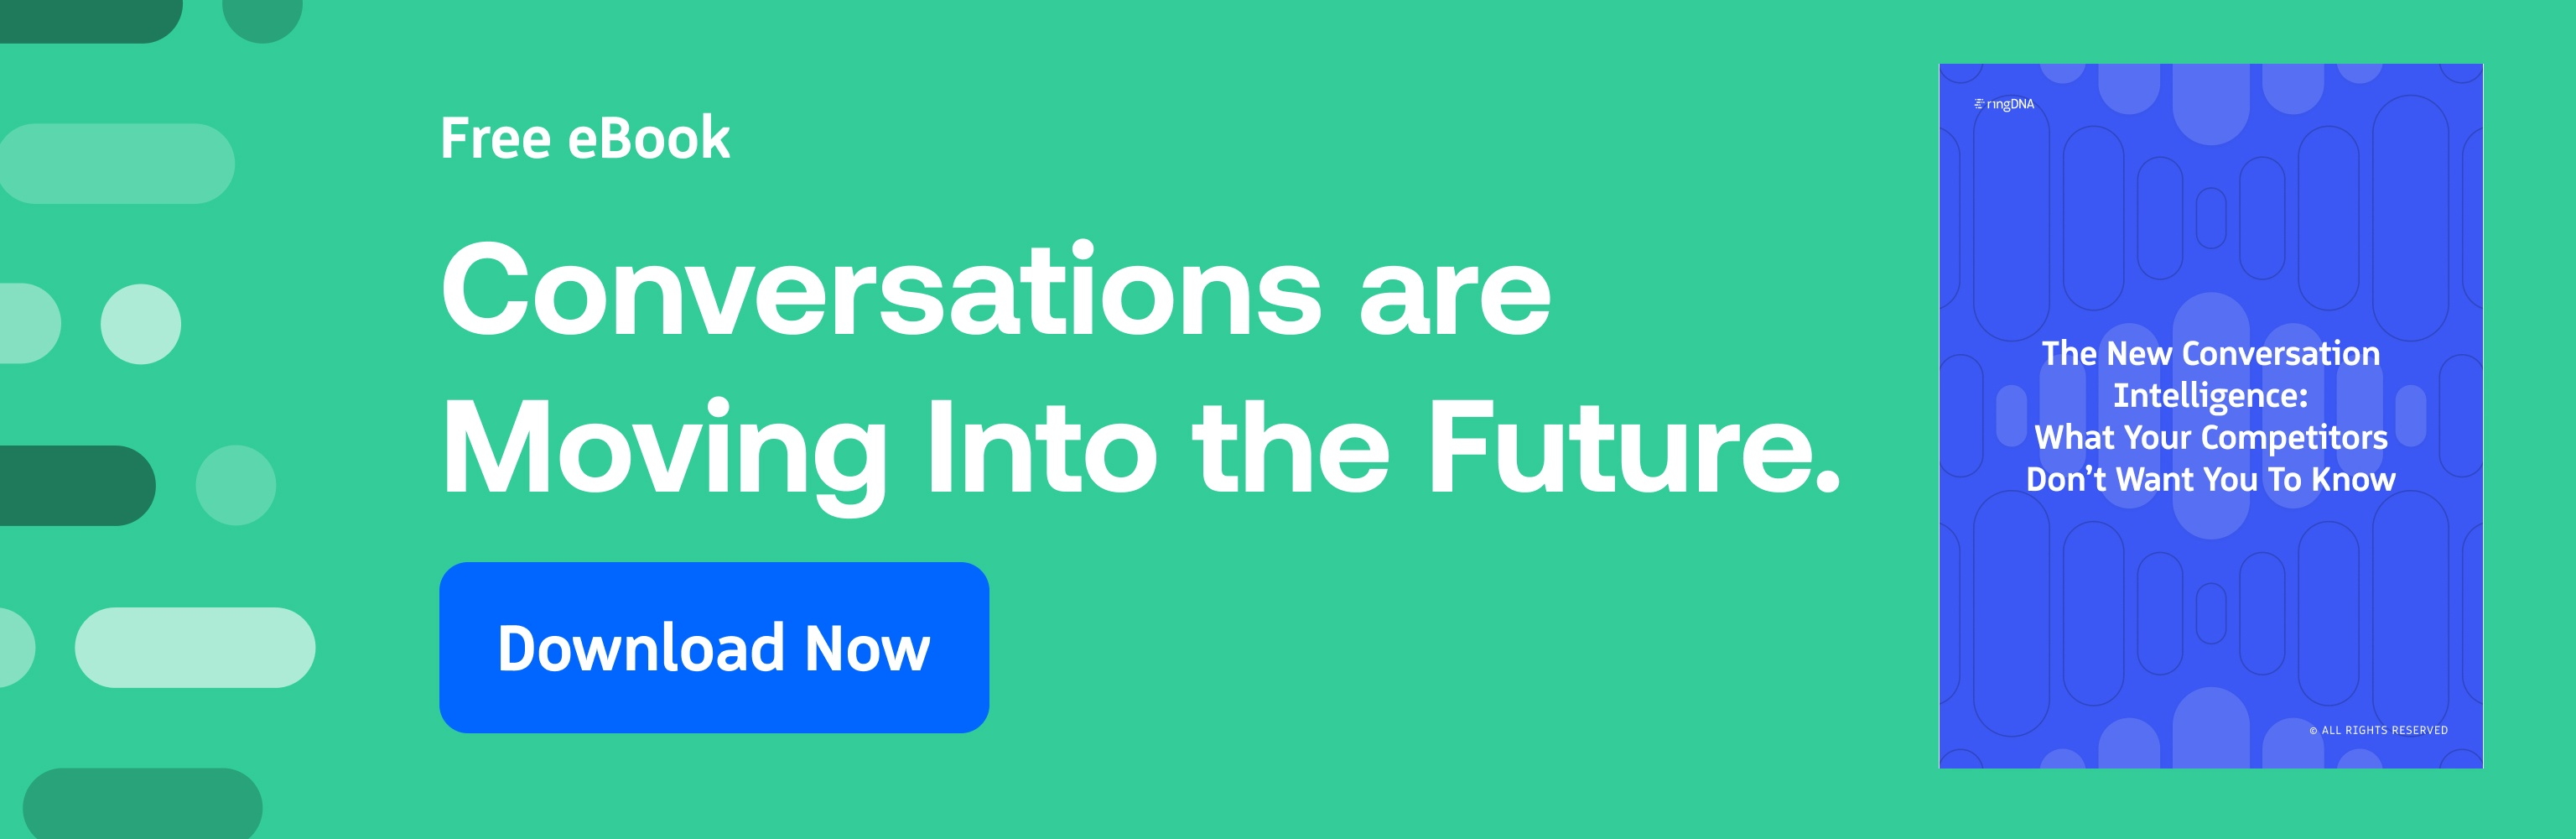 The New Conversation Intelligence: What Your Competitors Don't Want You To Know